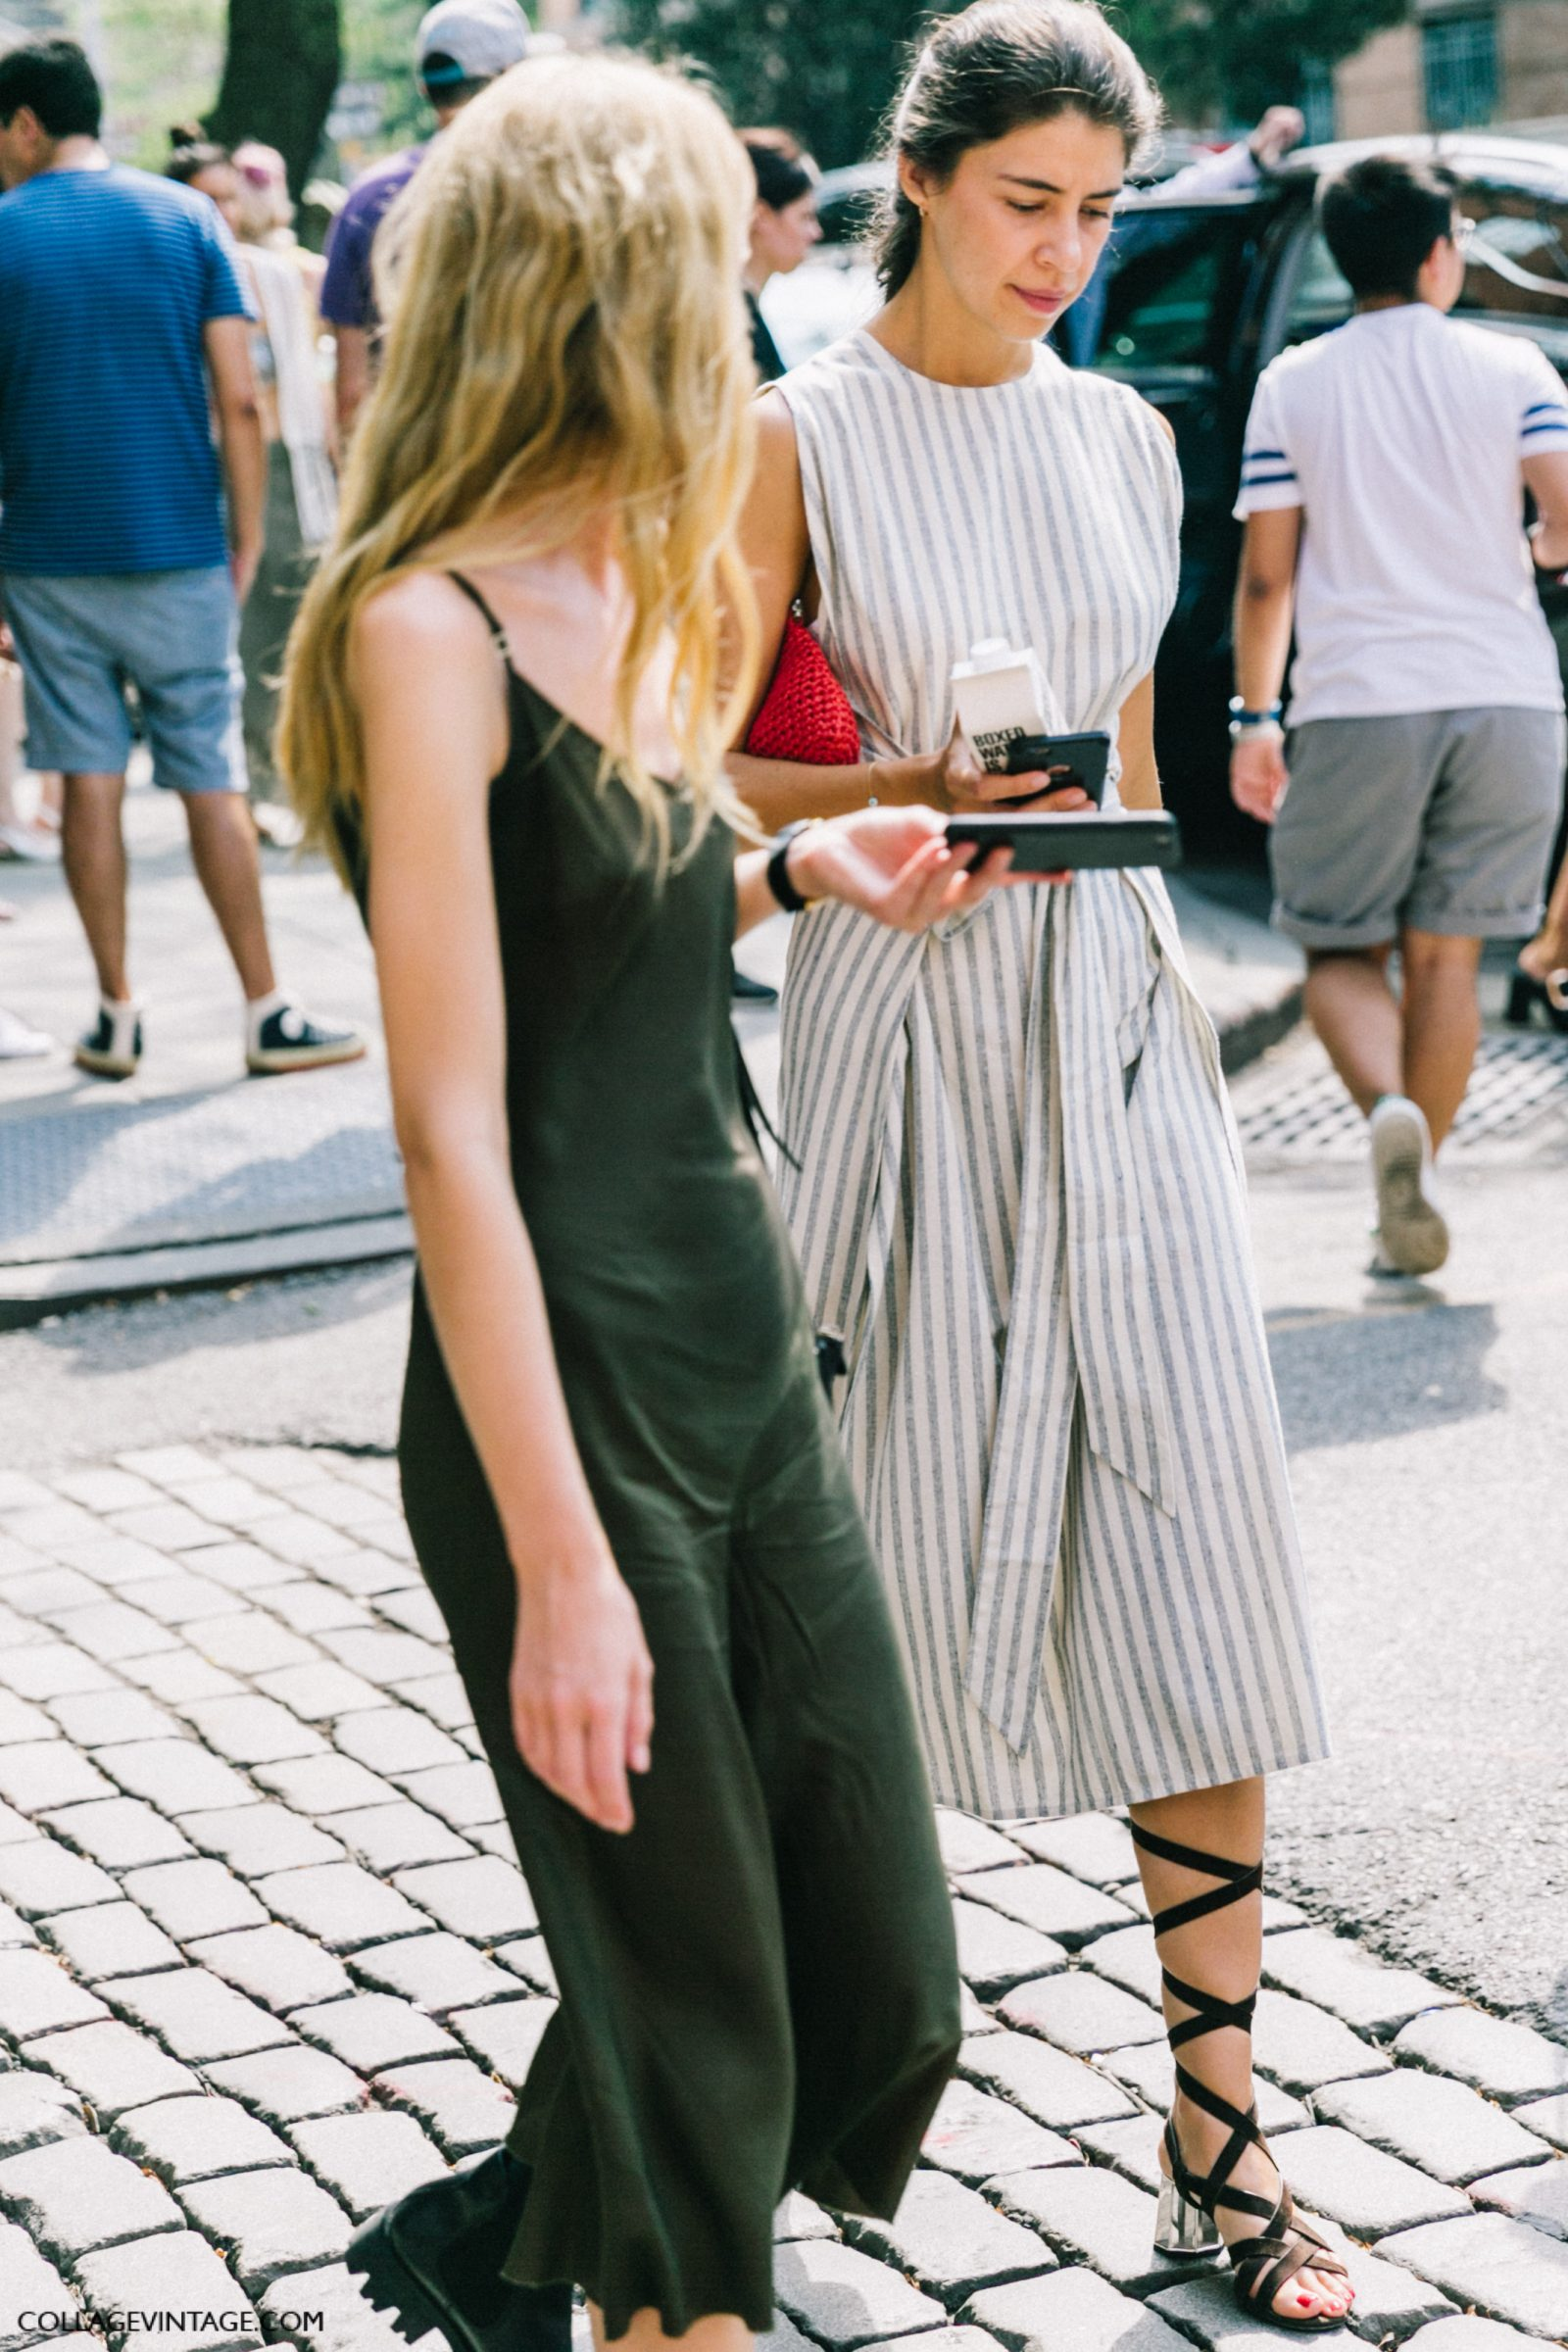 nyfw-new_york_fashion_week_ss17-street_style-outfits-collage_vintage-12